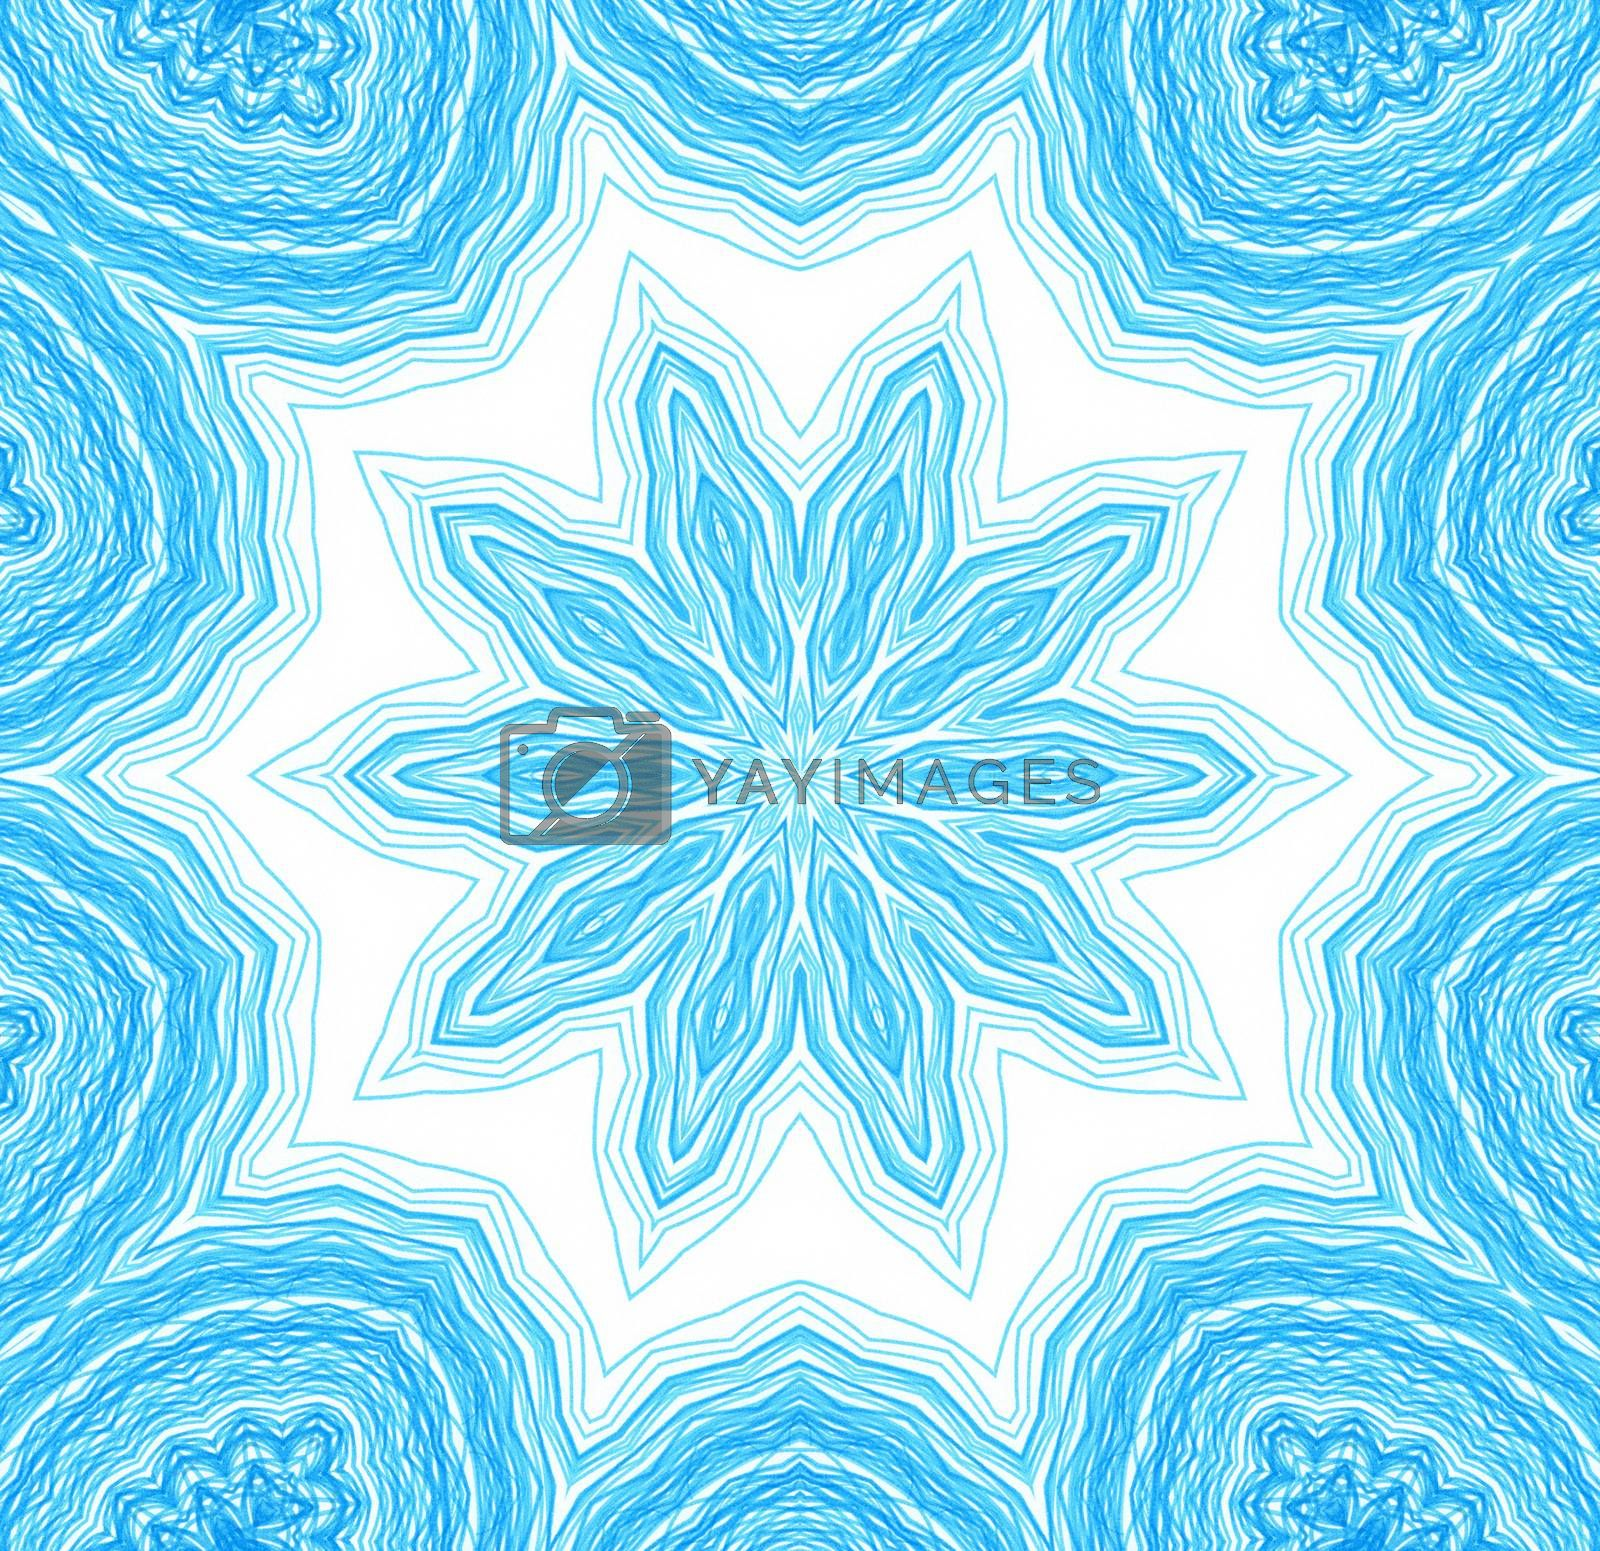 Abstract blue concentric pattern for design on white background